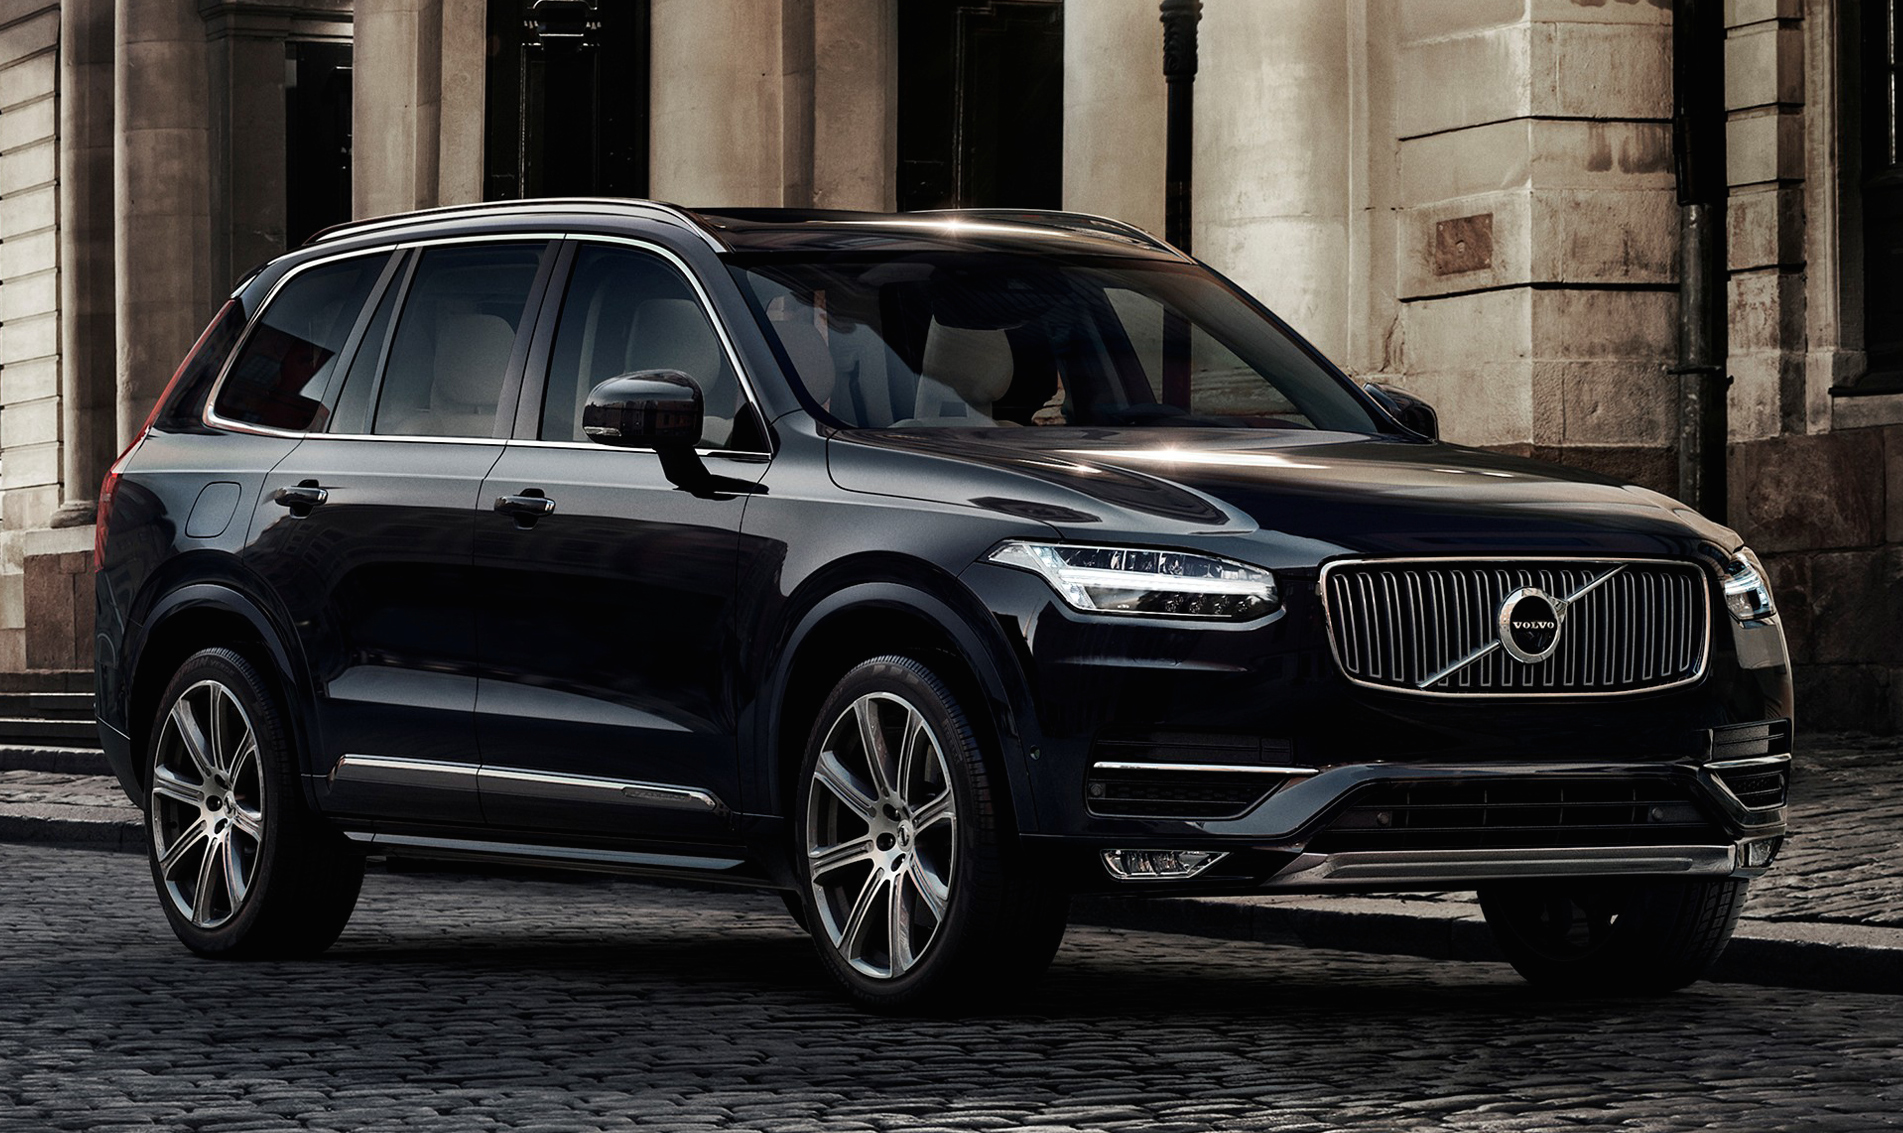 2015 Volvo XC90 First Edition – limited run of 1,927 vehicles, only